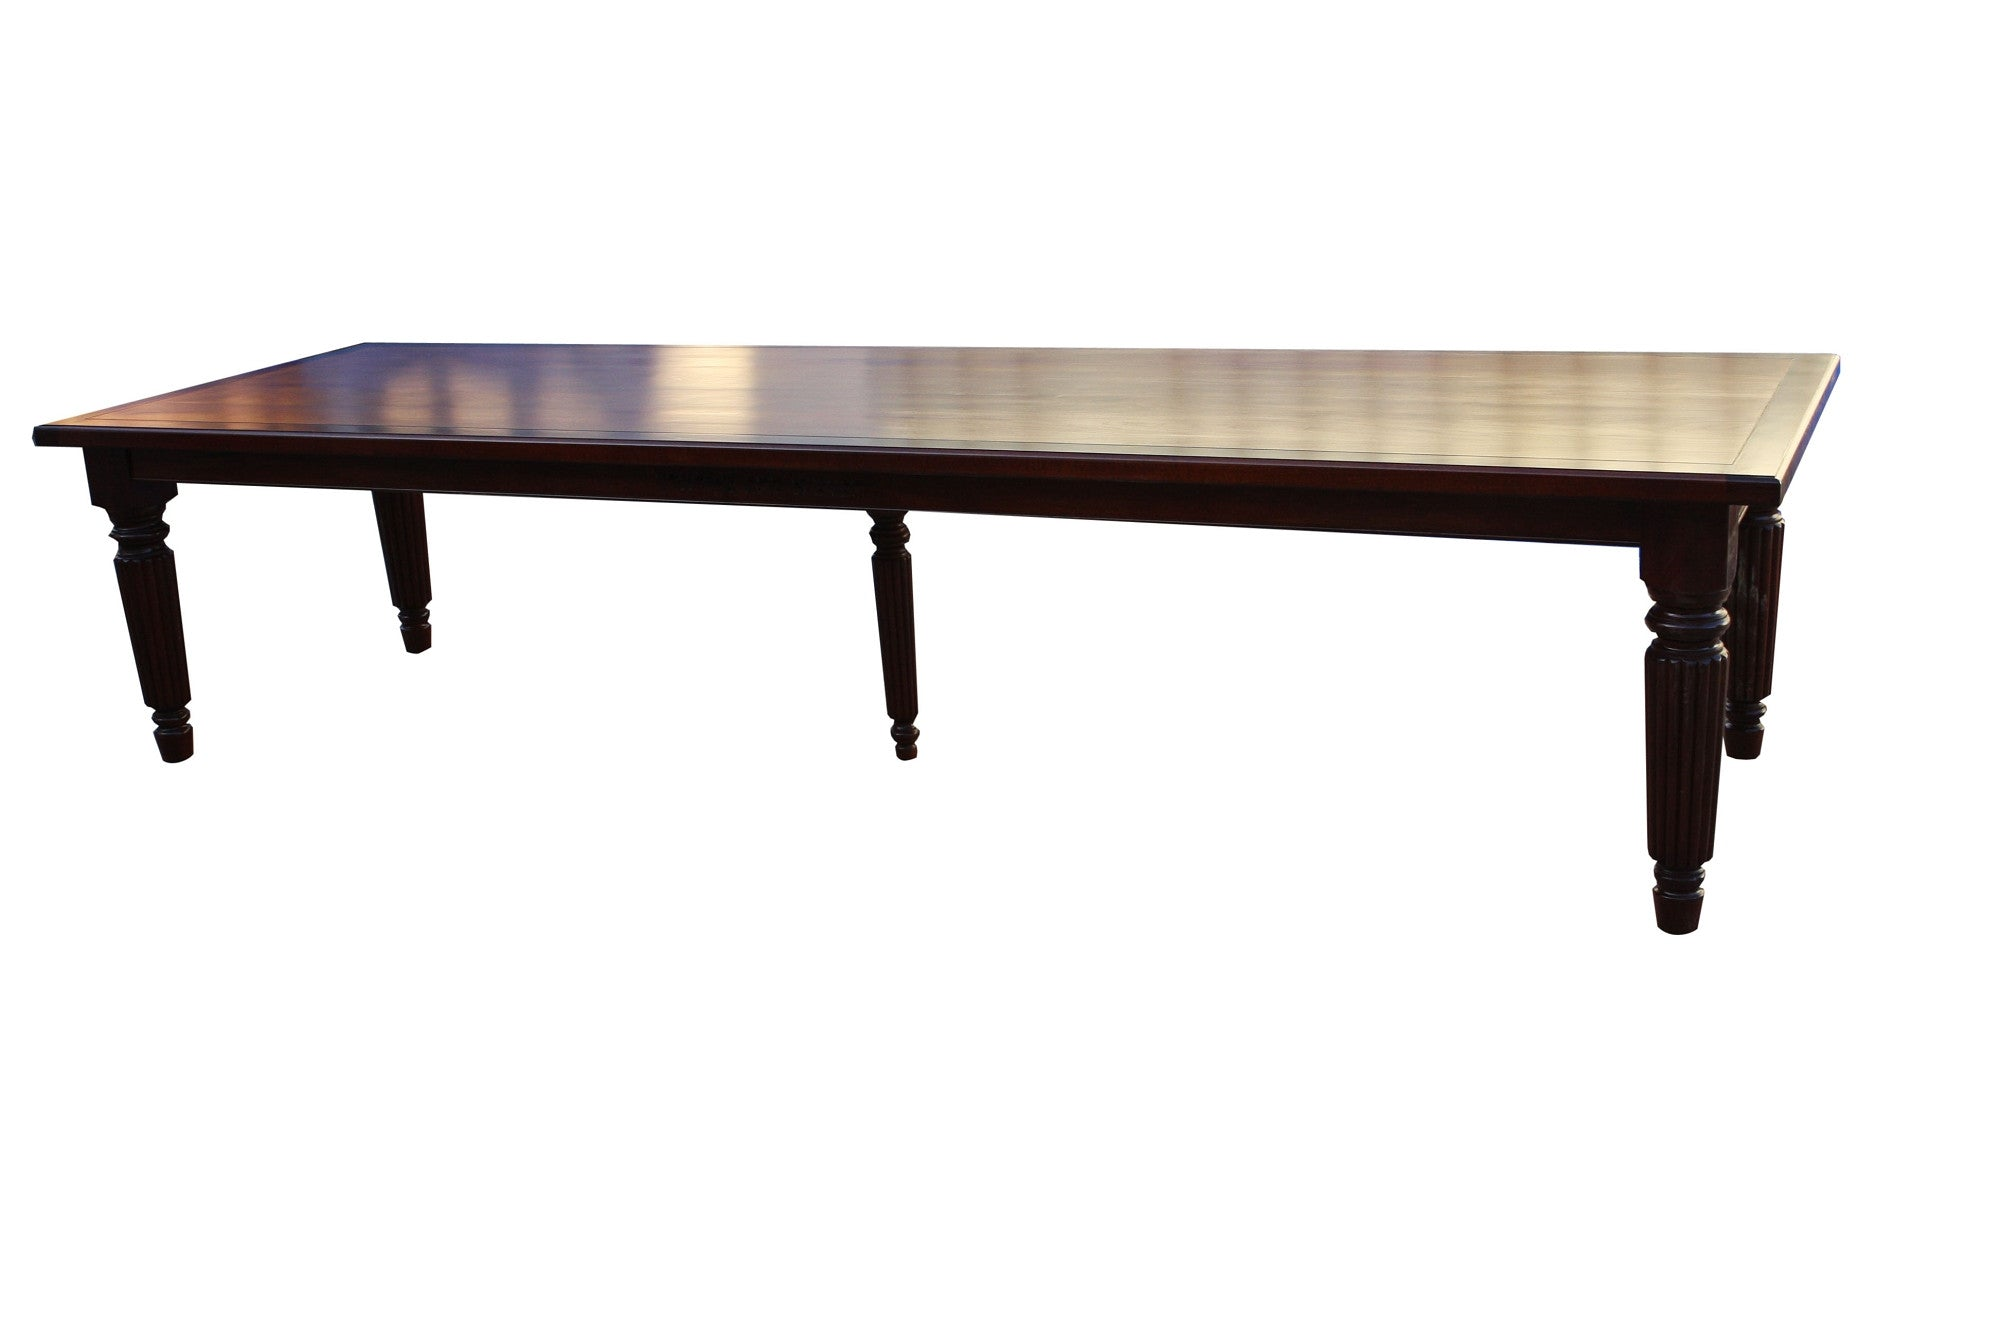 Custom  11 feet long Fluted Leg Dining table